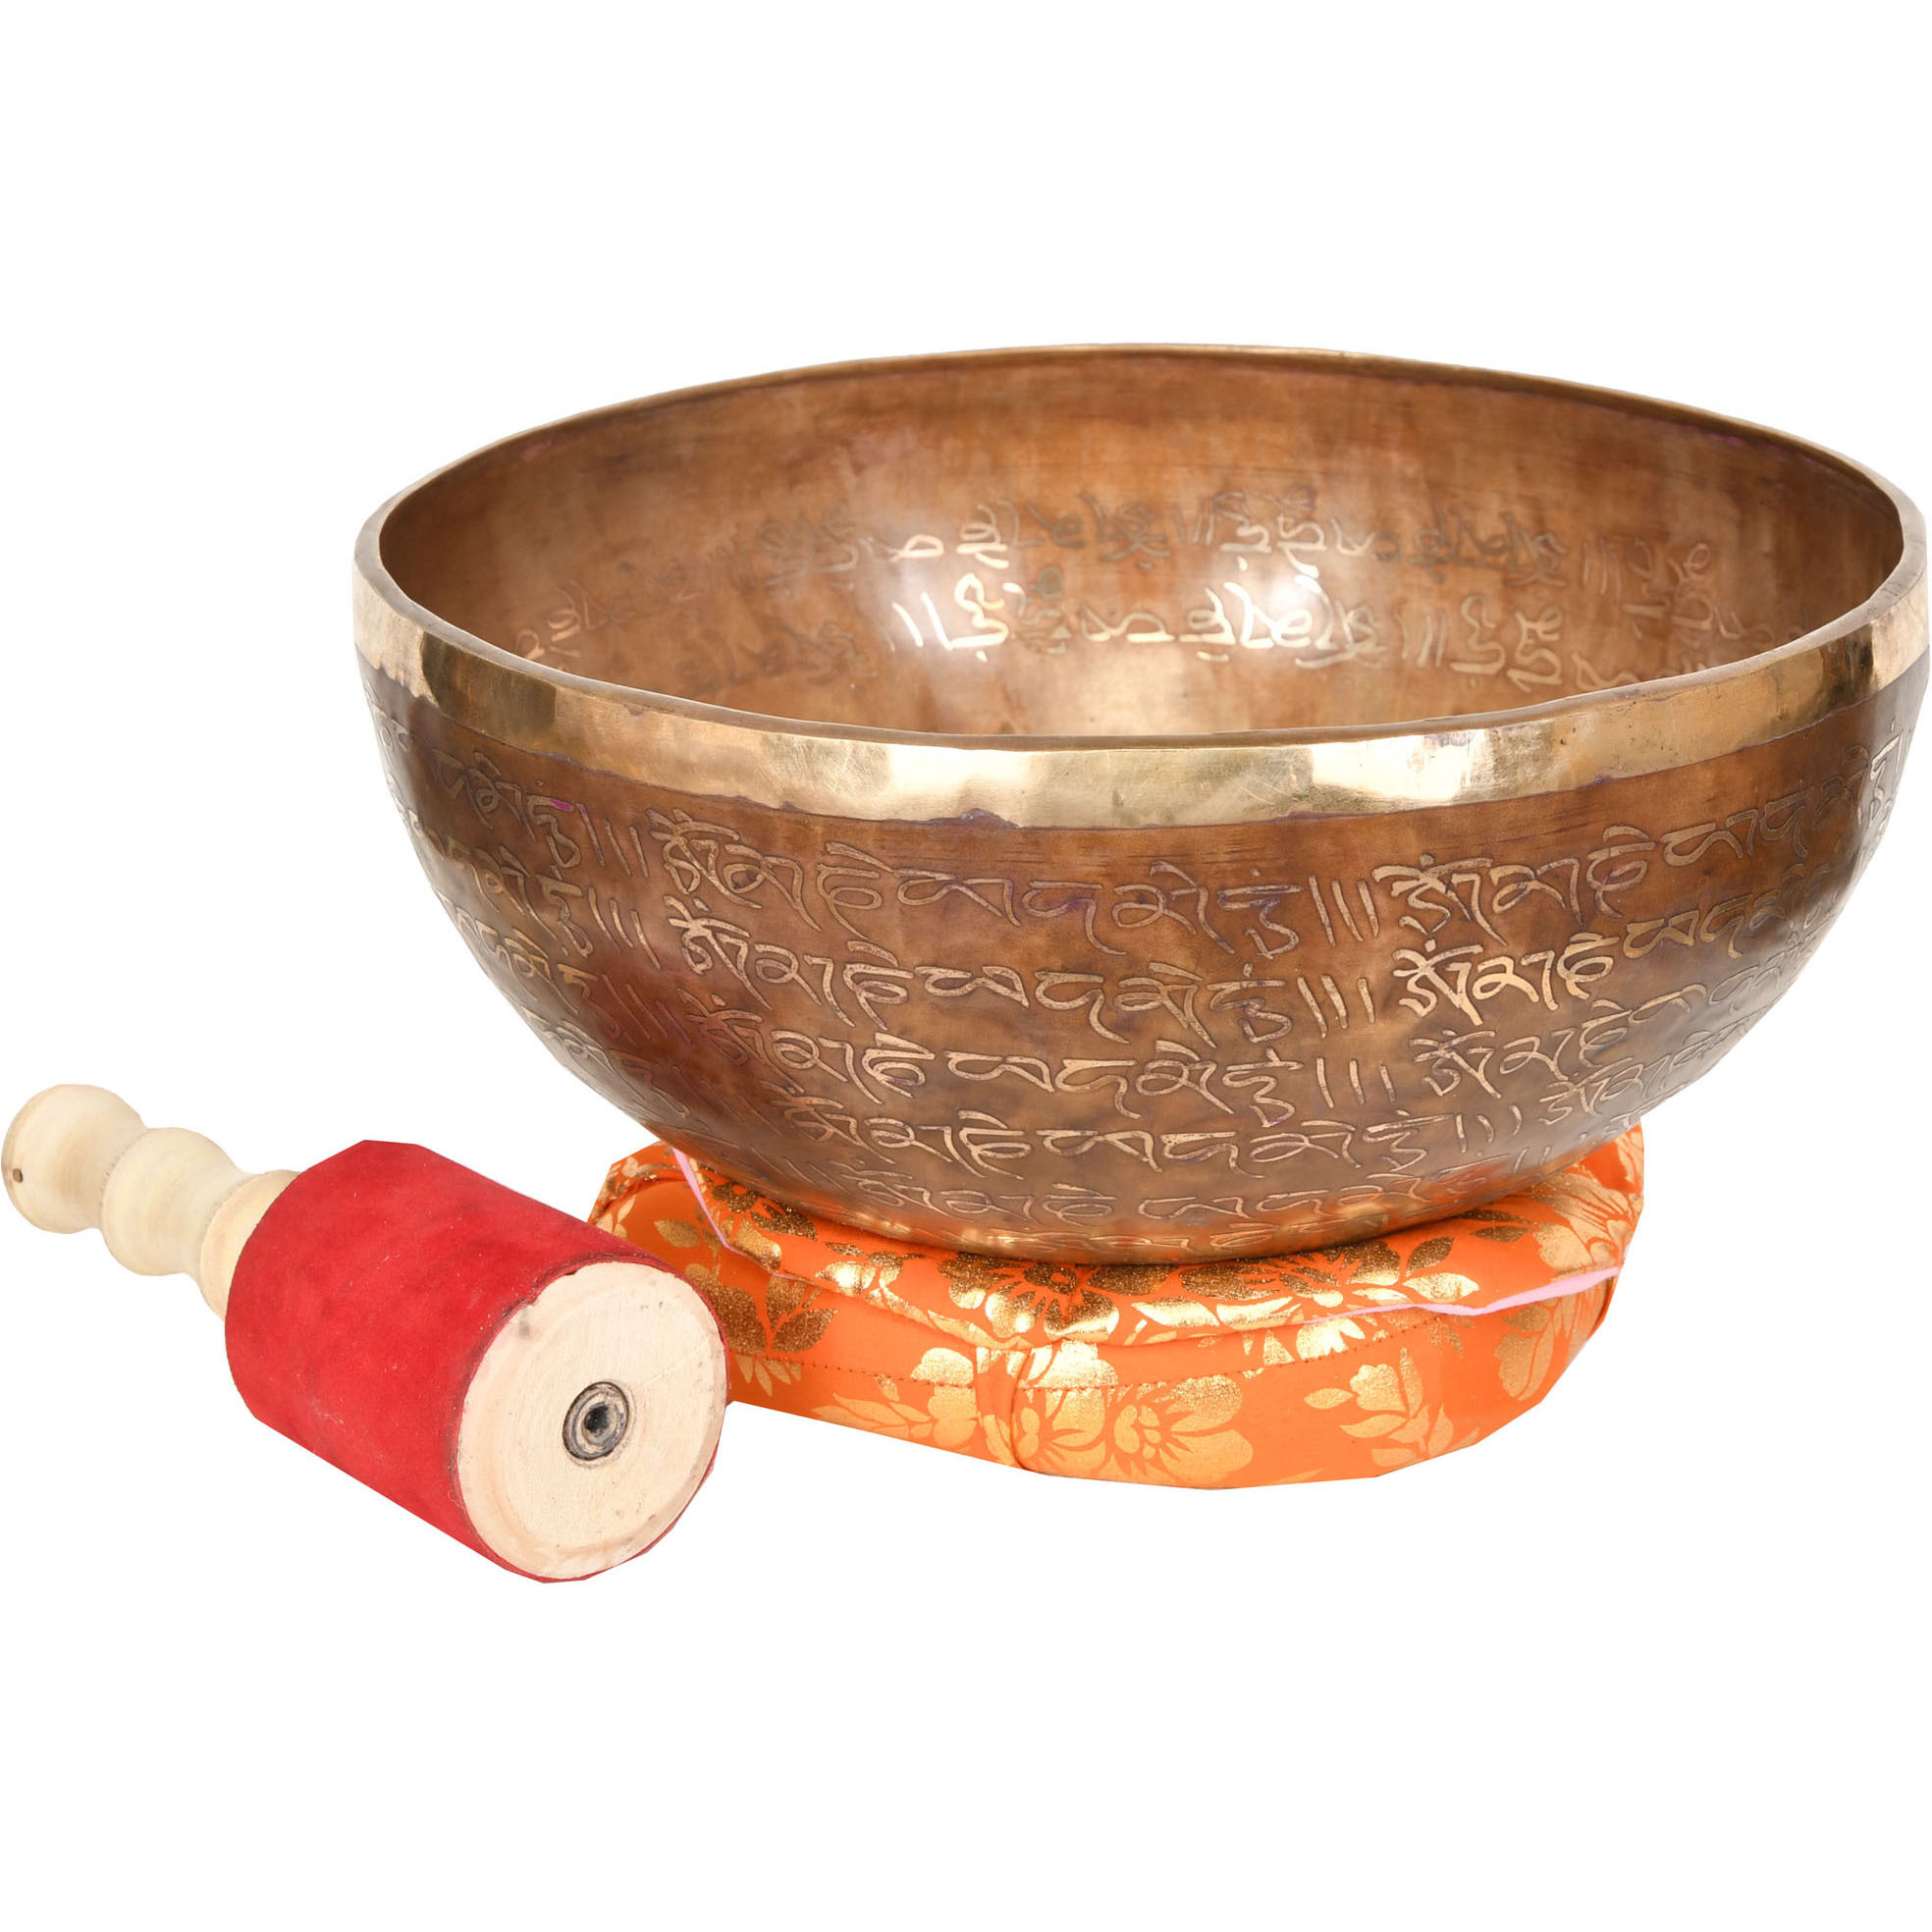 Tibetan Singing Bowl with Syllable Mantra